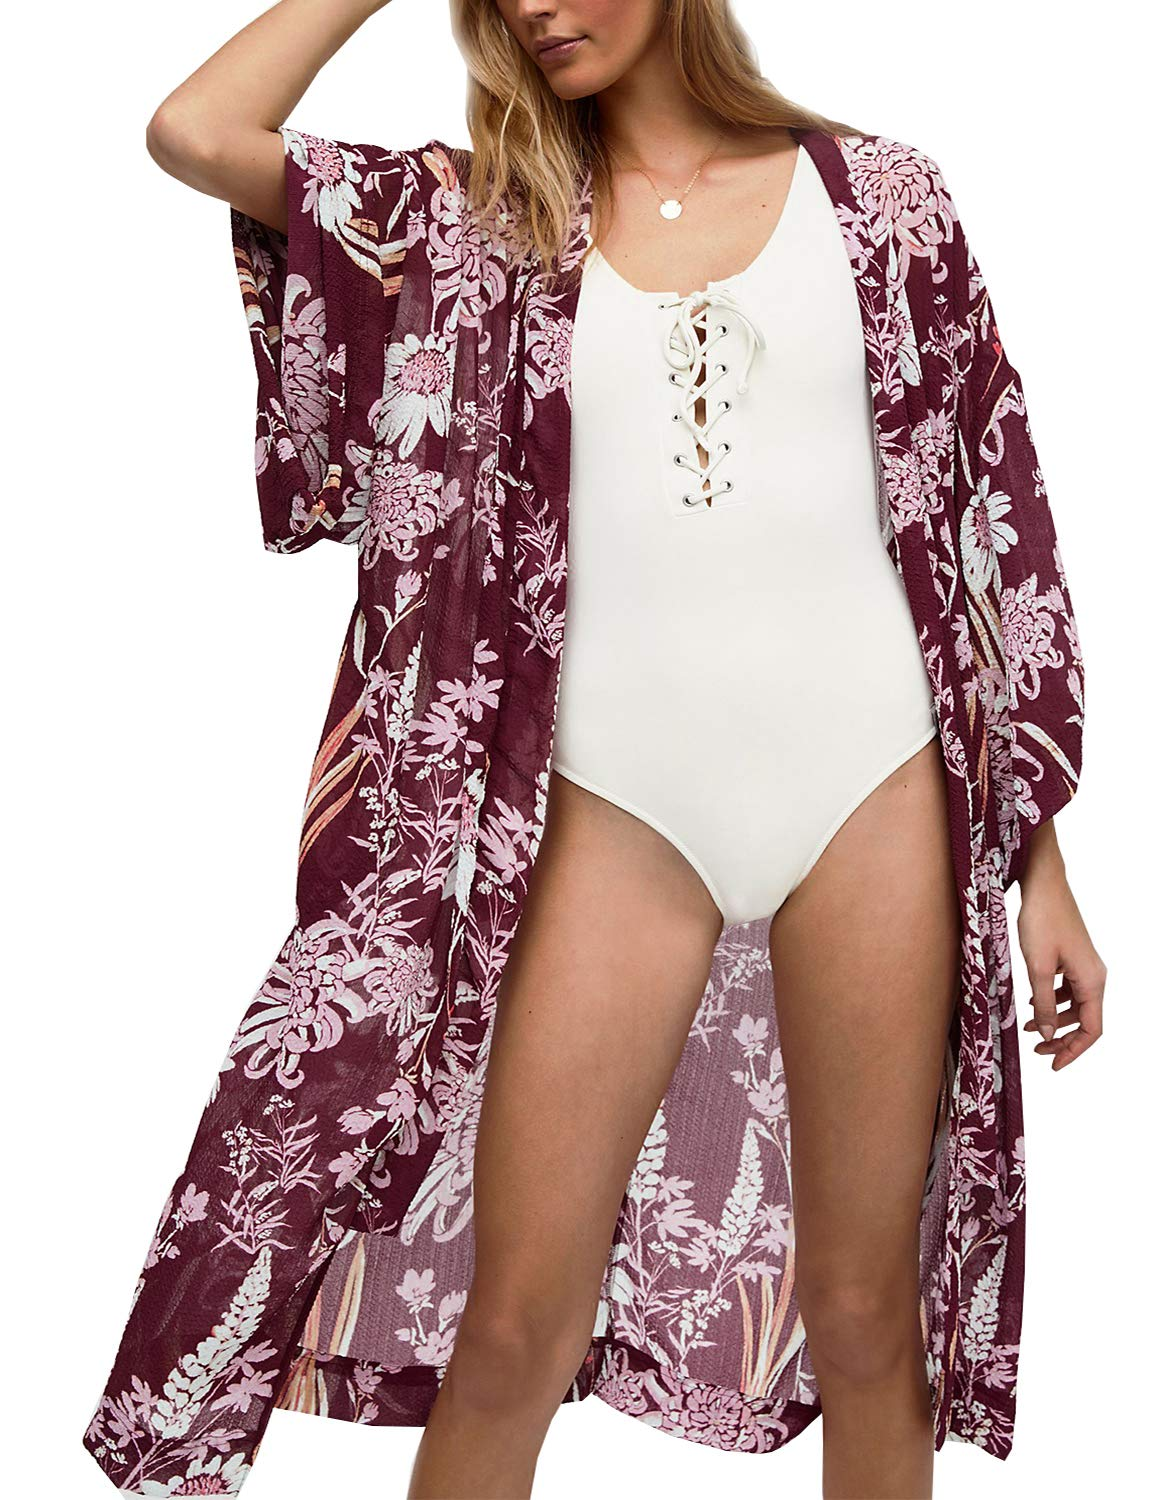 ChainJoy Womens 3/4 Long Sleeve Floral Print Casual Kimono Robe Cardigan Swimsuit Cover up